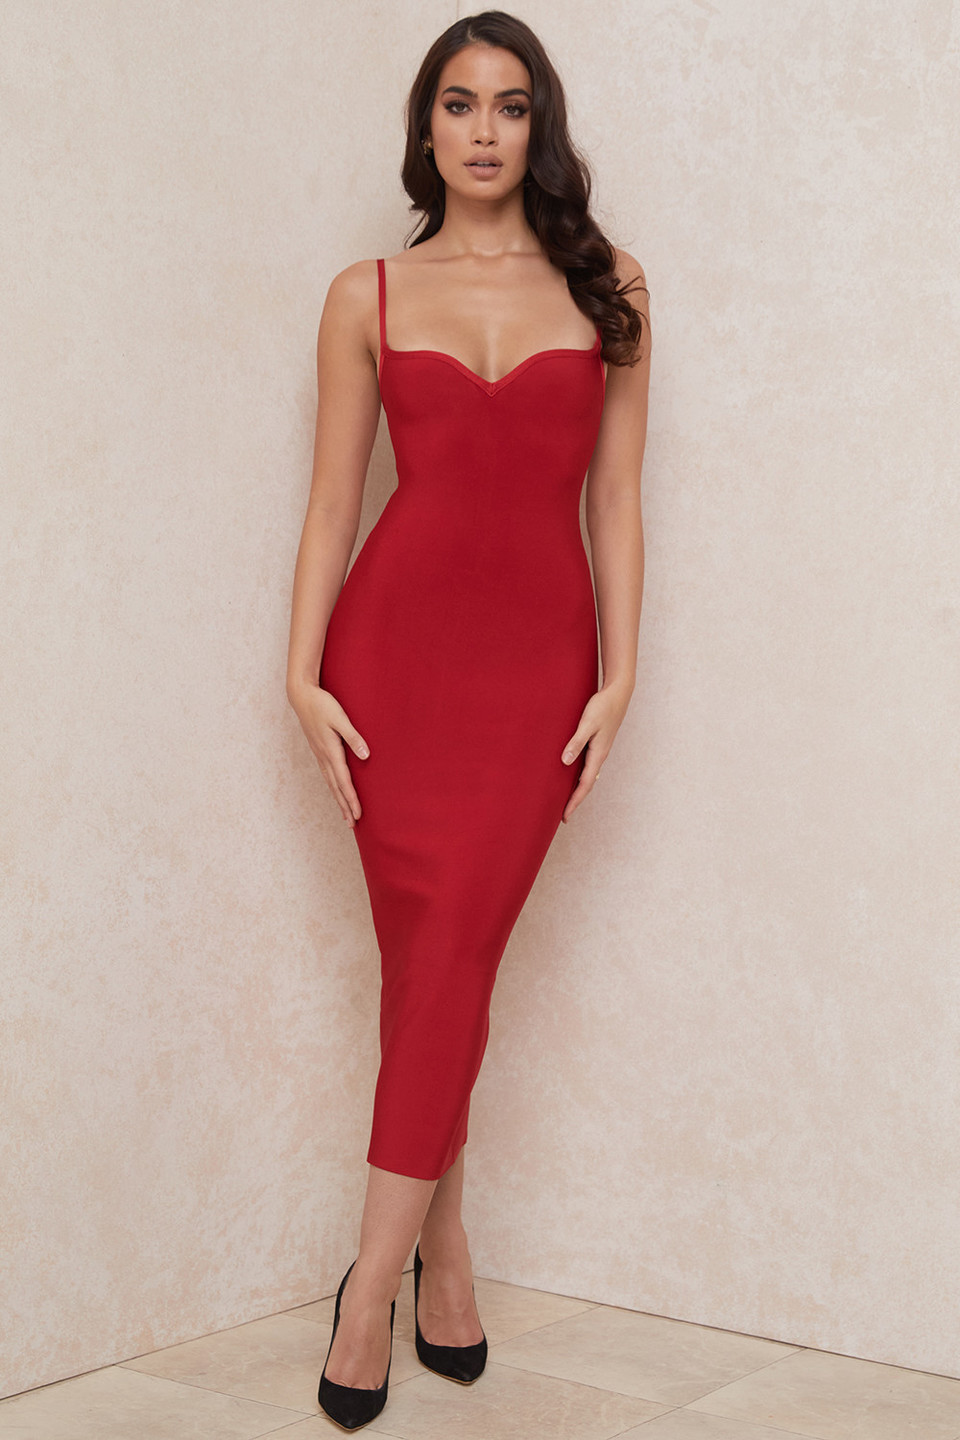 Domenica Red Sweetheart Neckline Bandage Dress